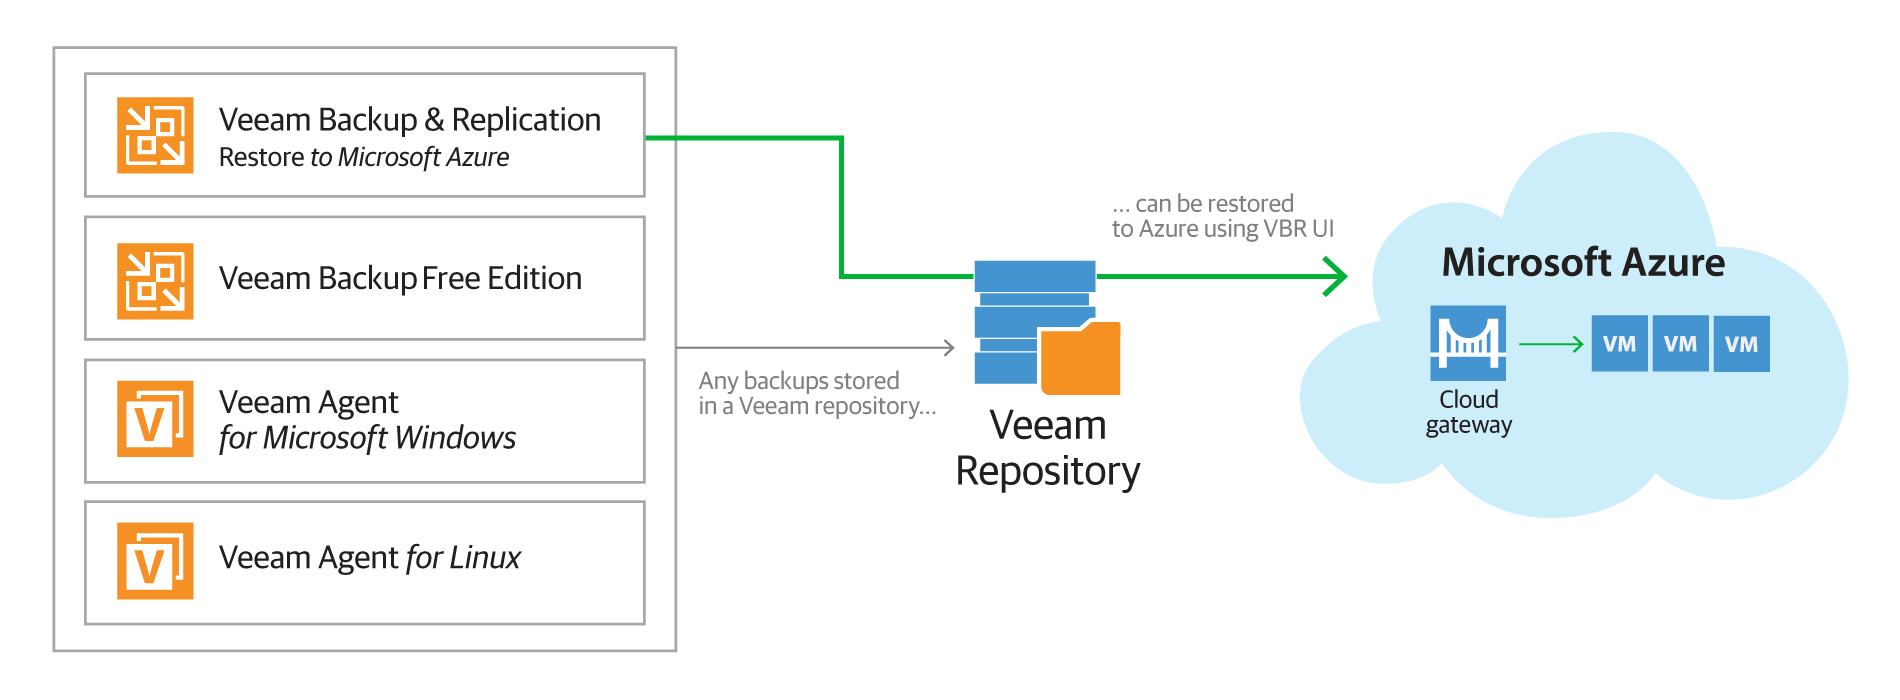 Veeam Agent for Windows direct restore to MS Azure